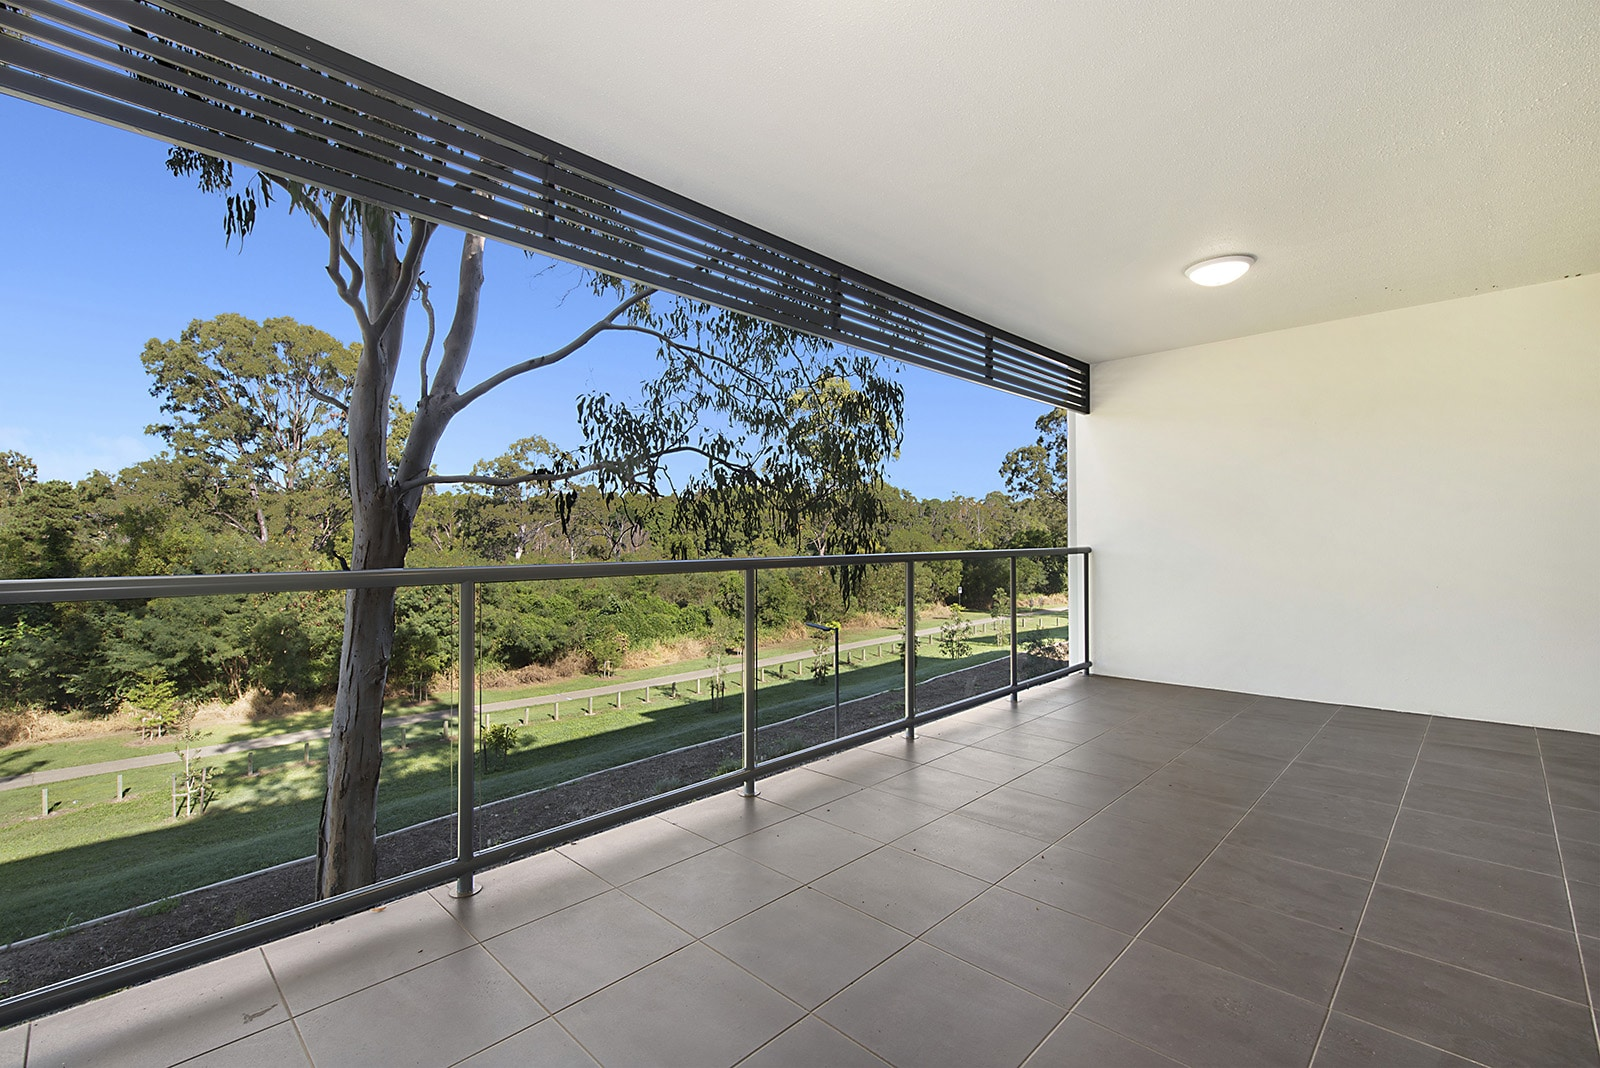 Views from the massive deck on these BRAND NEW 2 BEDROOM LUXURY Petrie APARTMENTS